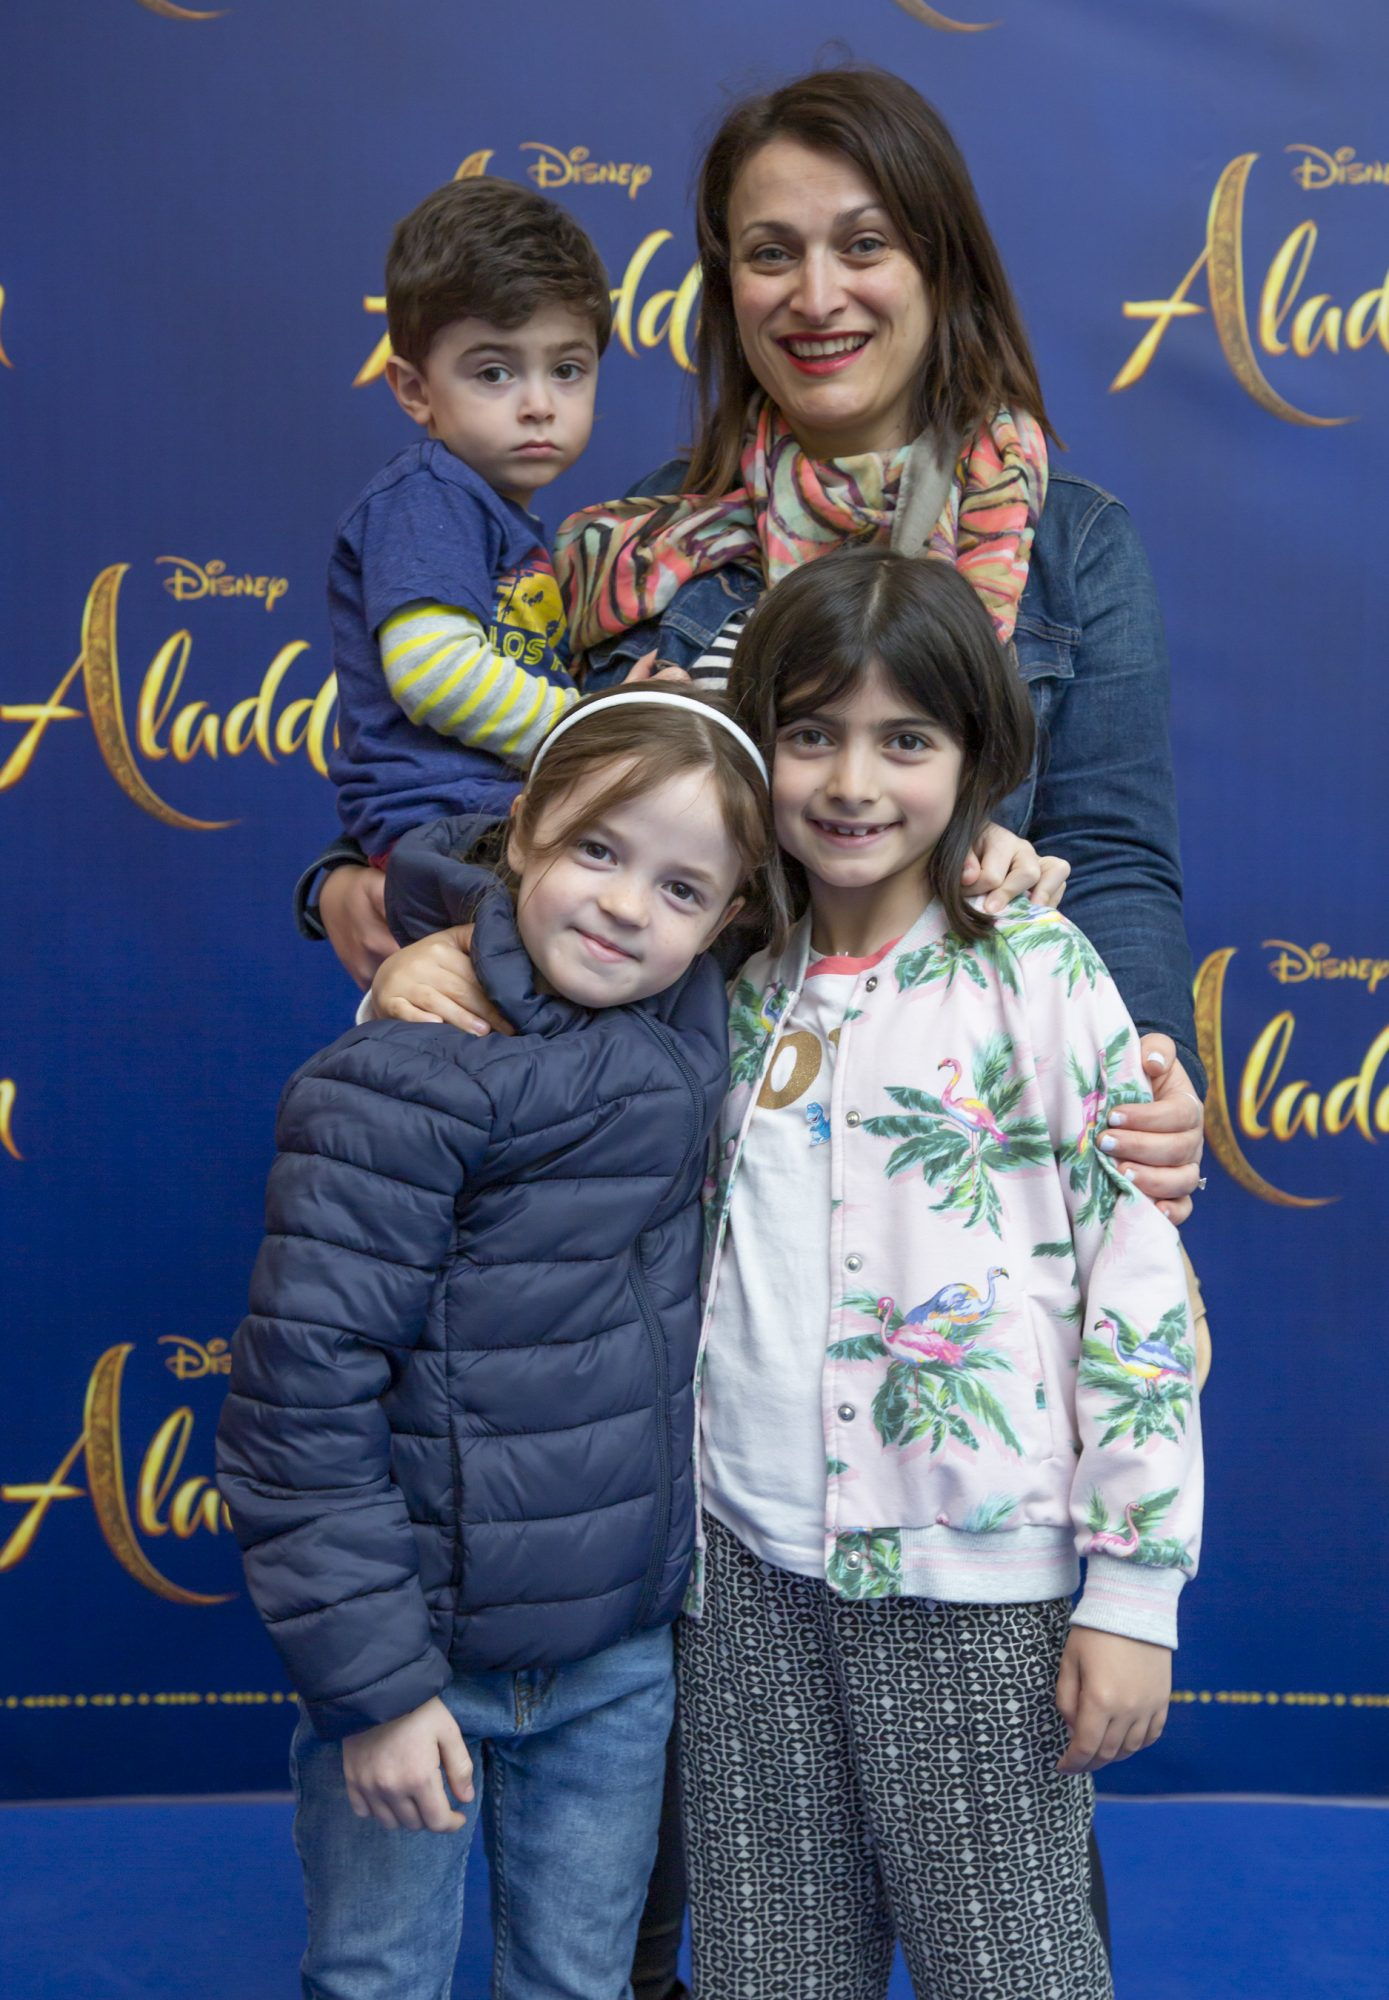 Sarina Bellissimo, Maeve Wall, Georgia Duke & Liam Duke pictured at the special preview screening of Disney's 'Aladdin' at the Odeon Point Village. Photo: Anthony Woods